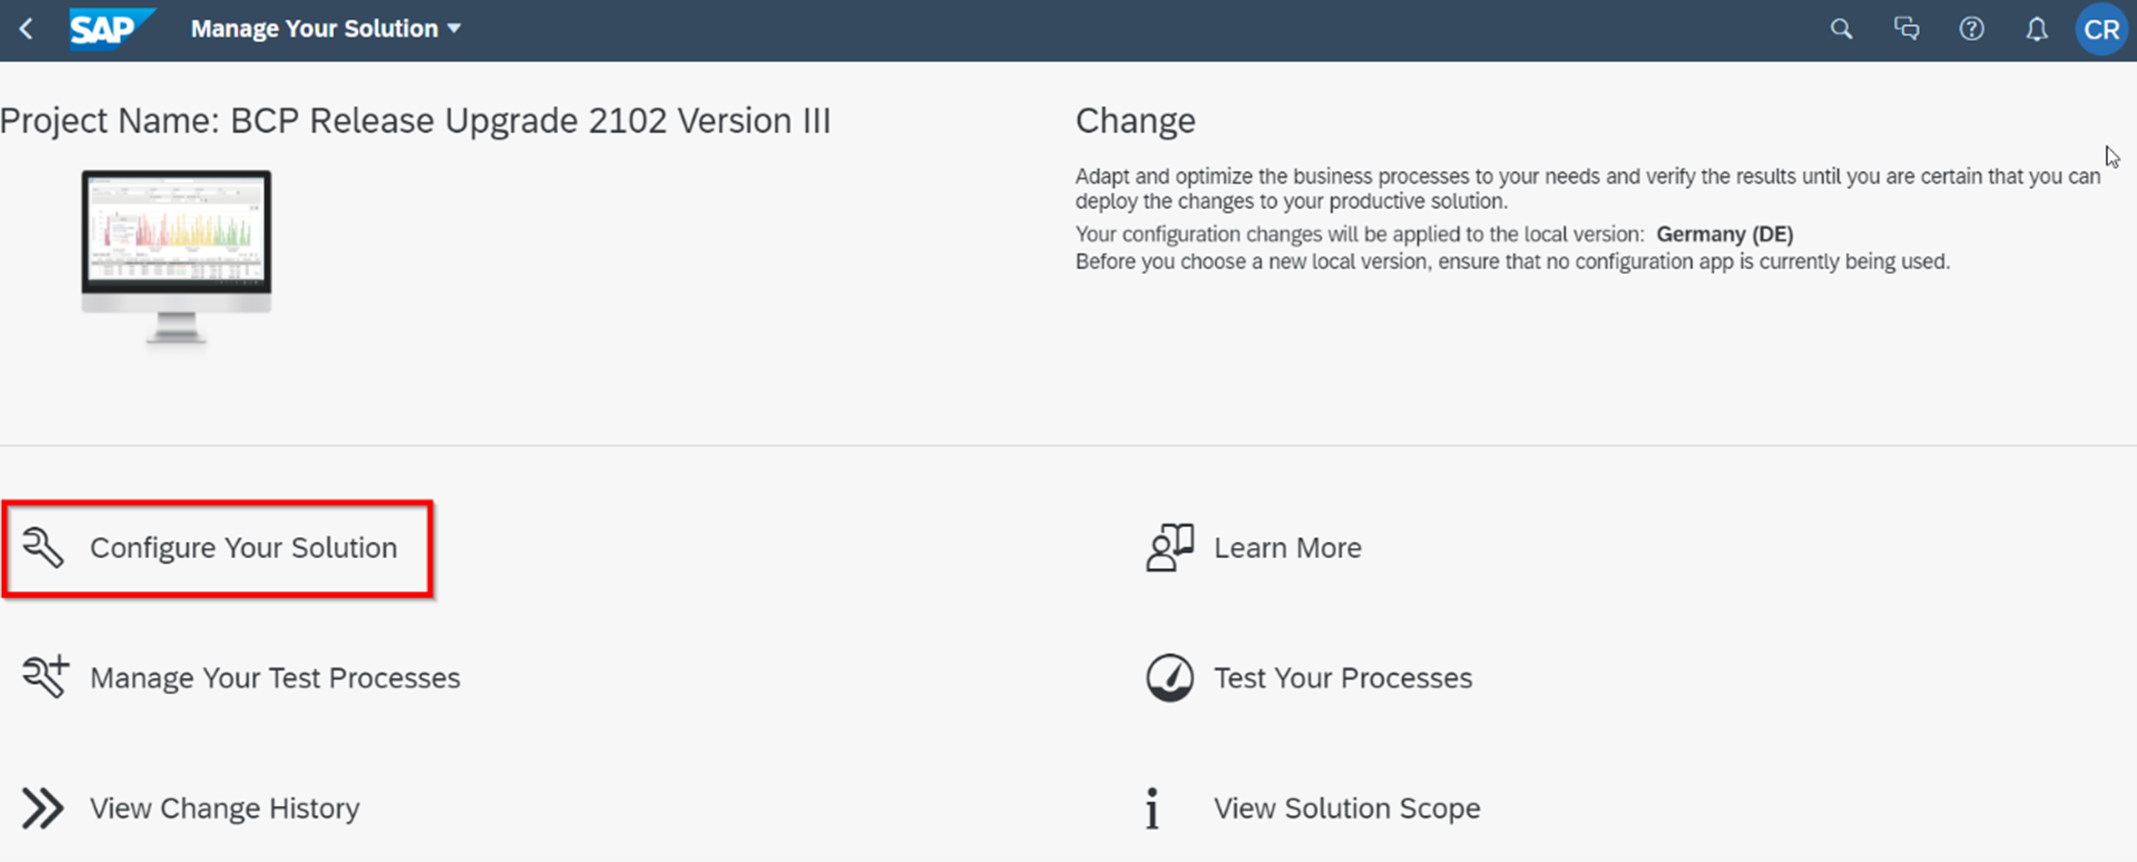 Abbildung 3: Manage your solution: Configure your solution